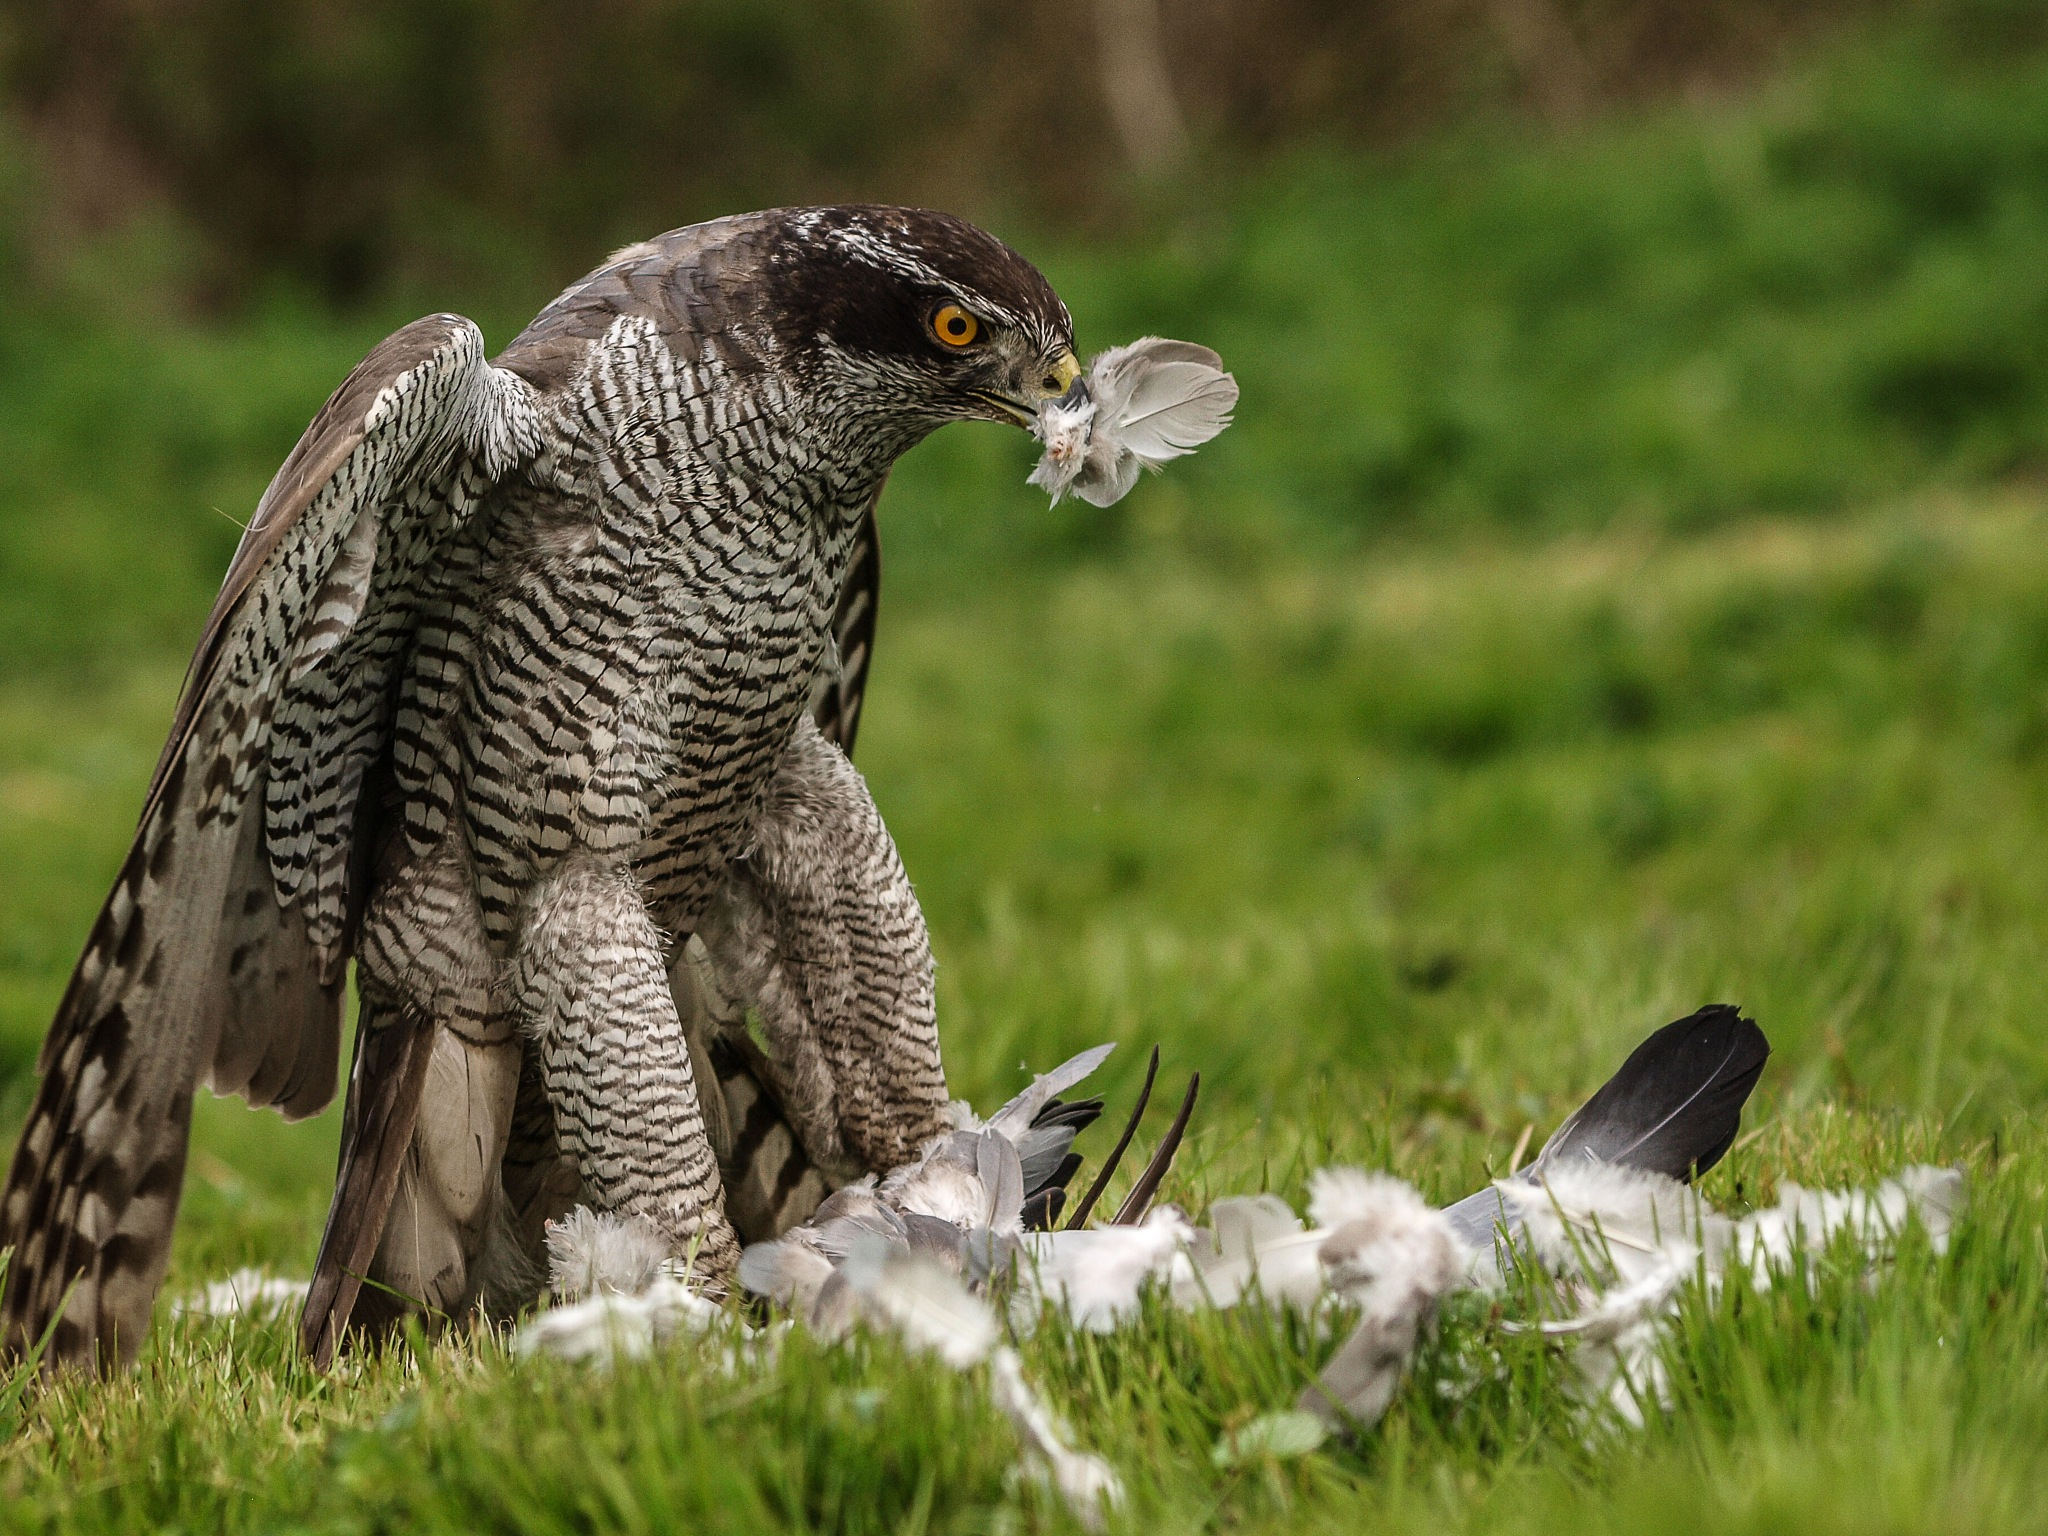 Plucking feathers by garry-chisholm1